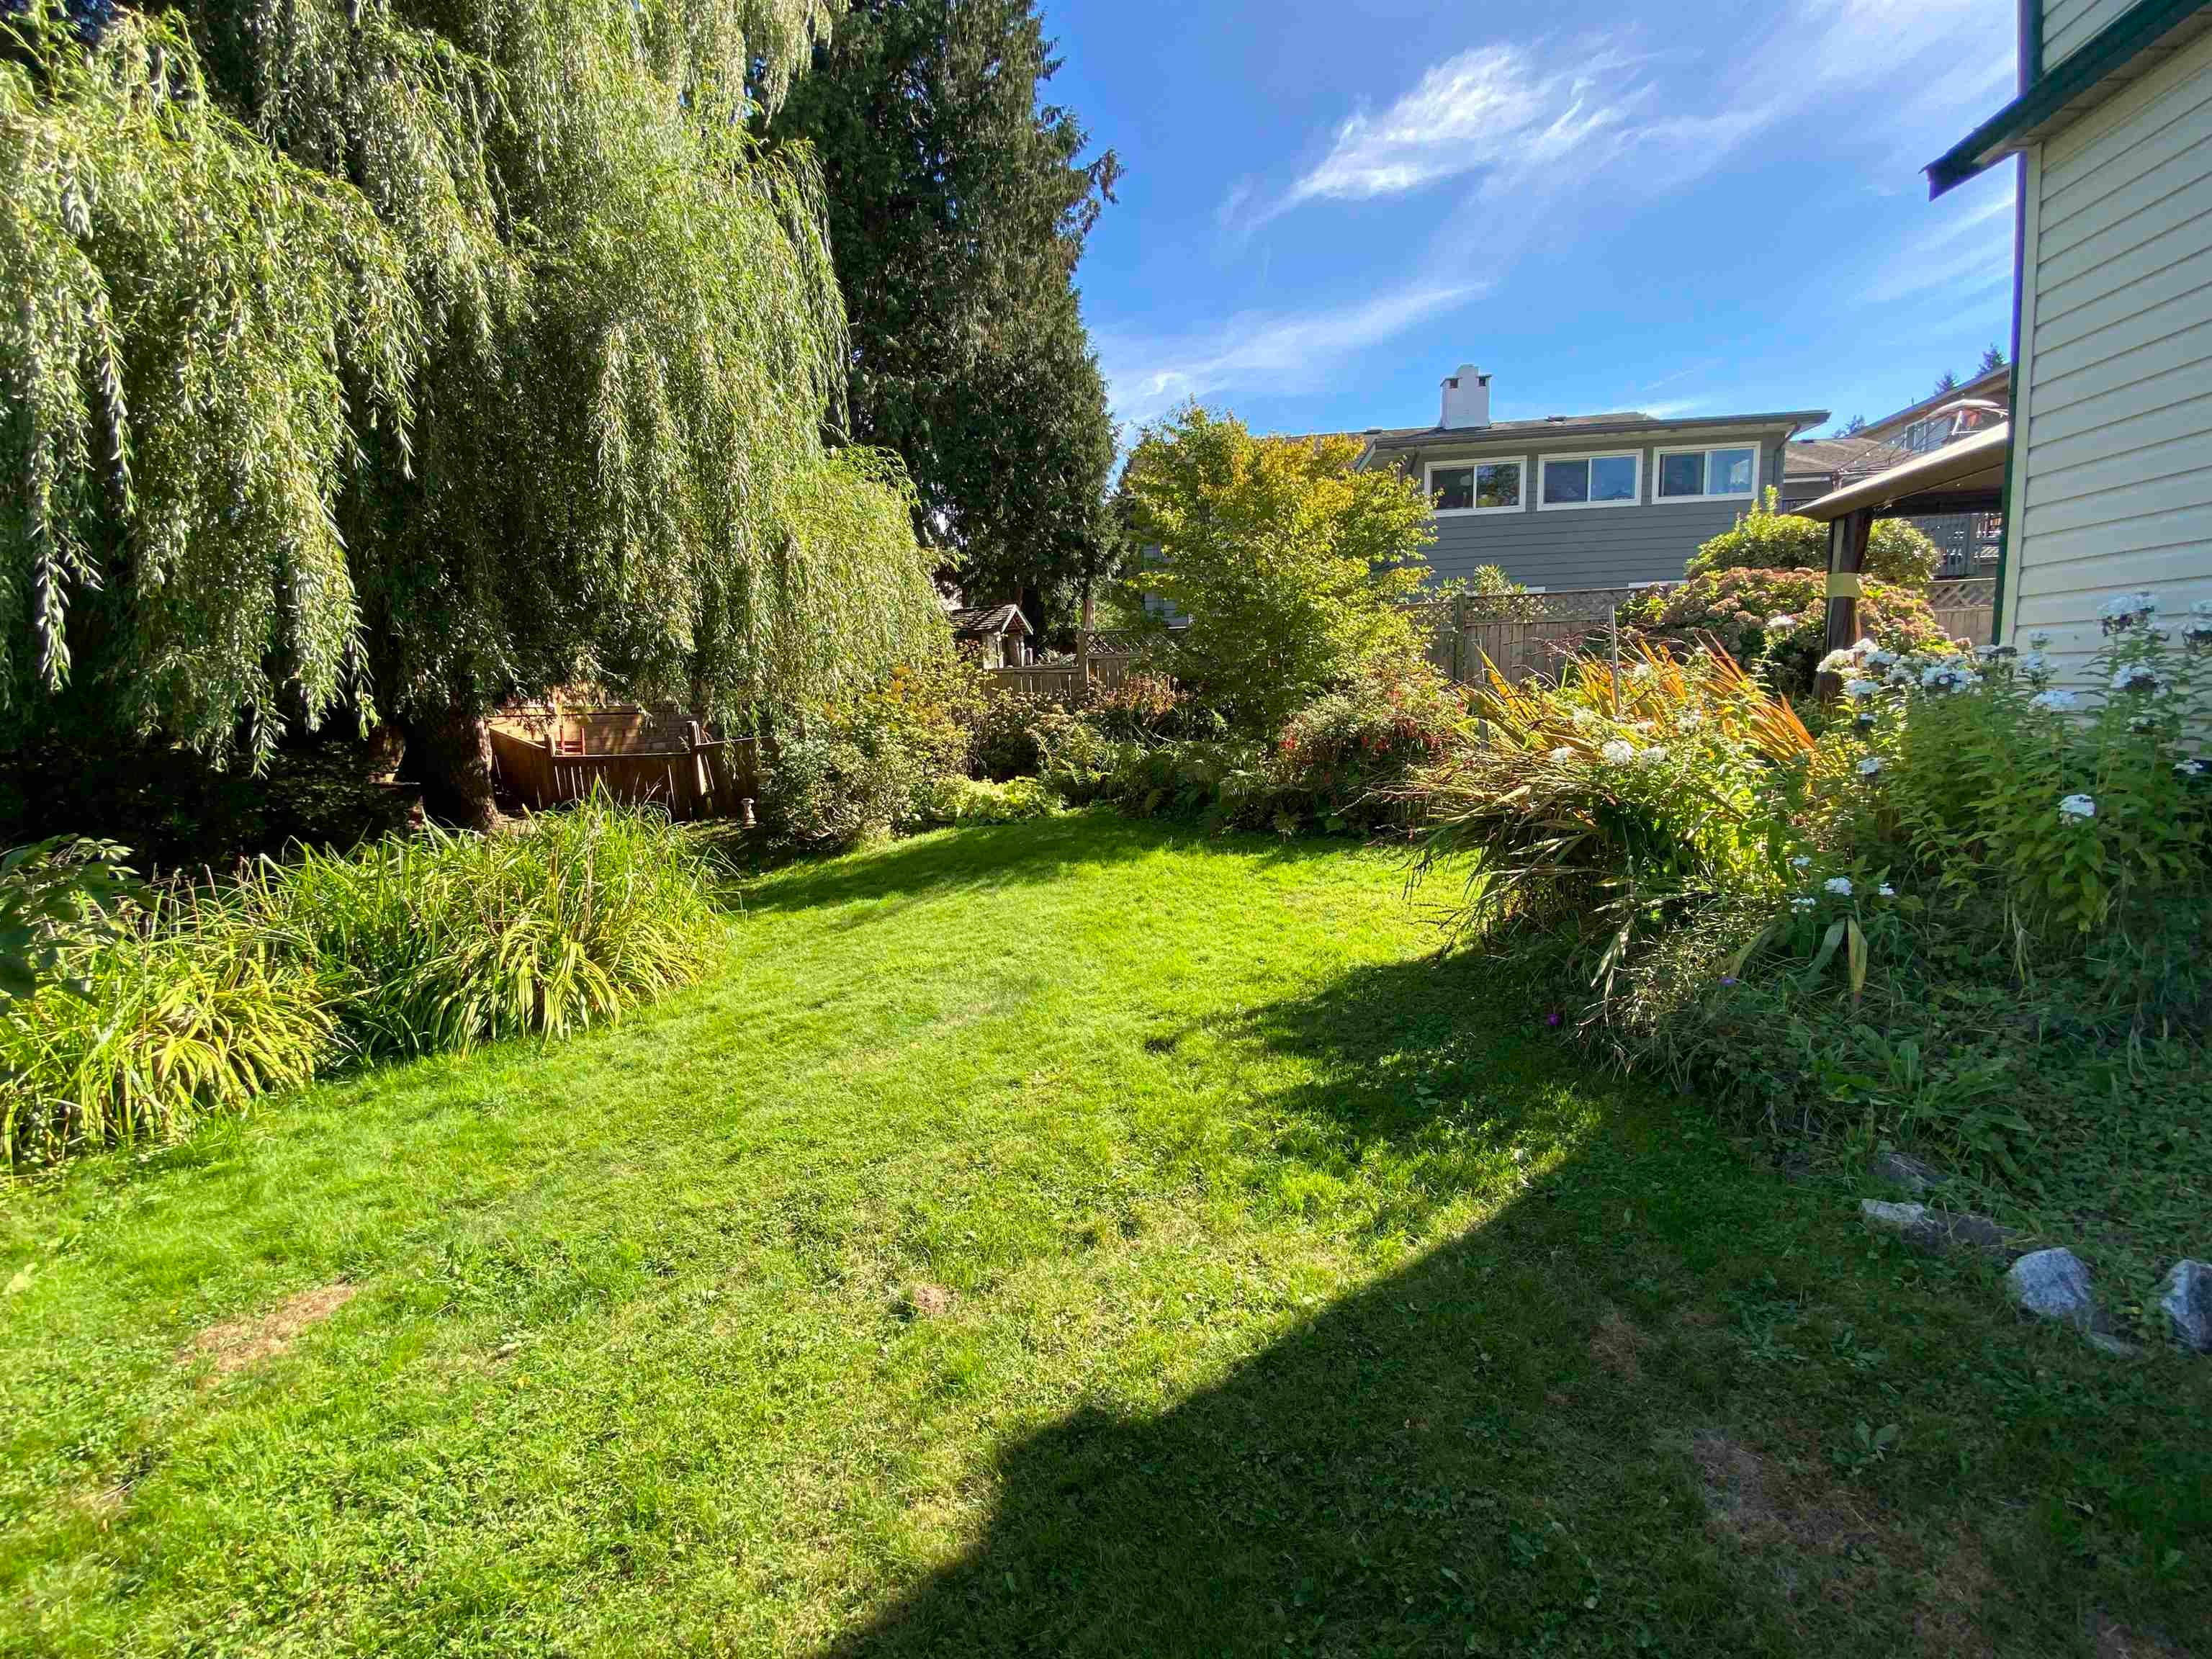 19950 48A AVENUE - Langley City House/Single Family for sale, 4 Bedrooms (R2615832) - #17